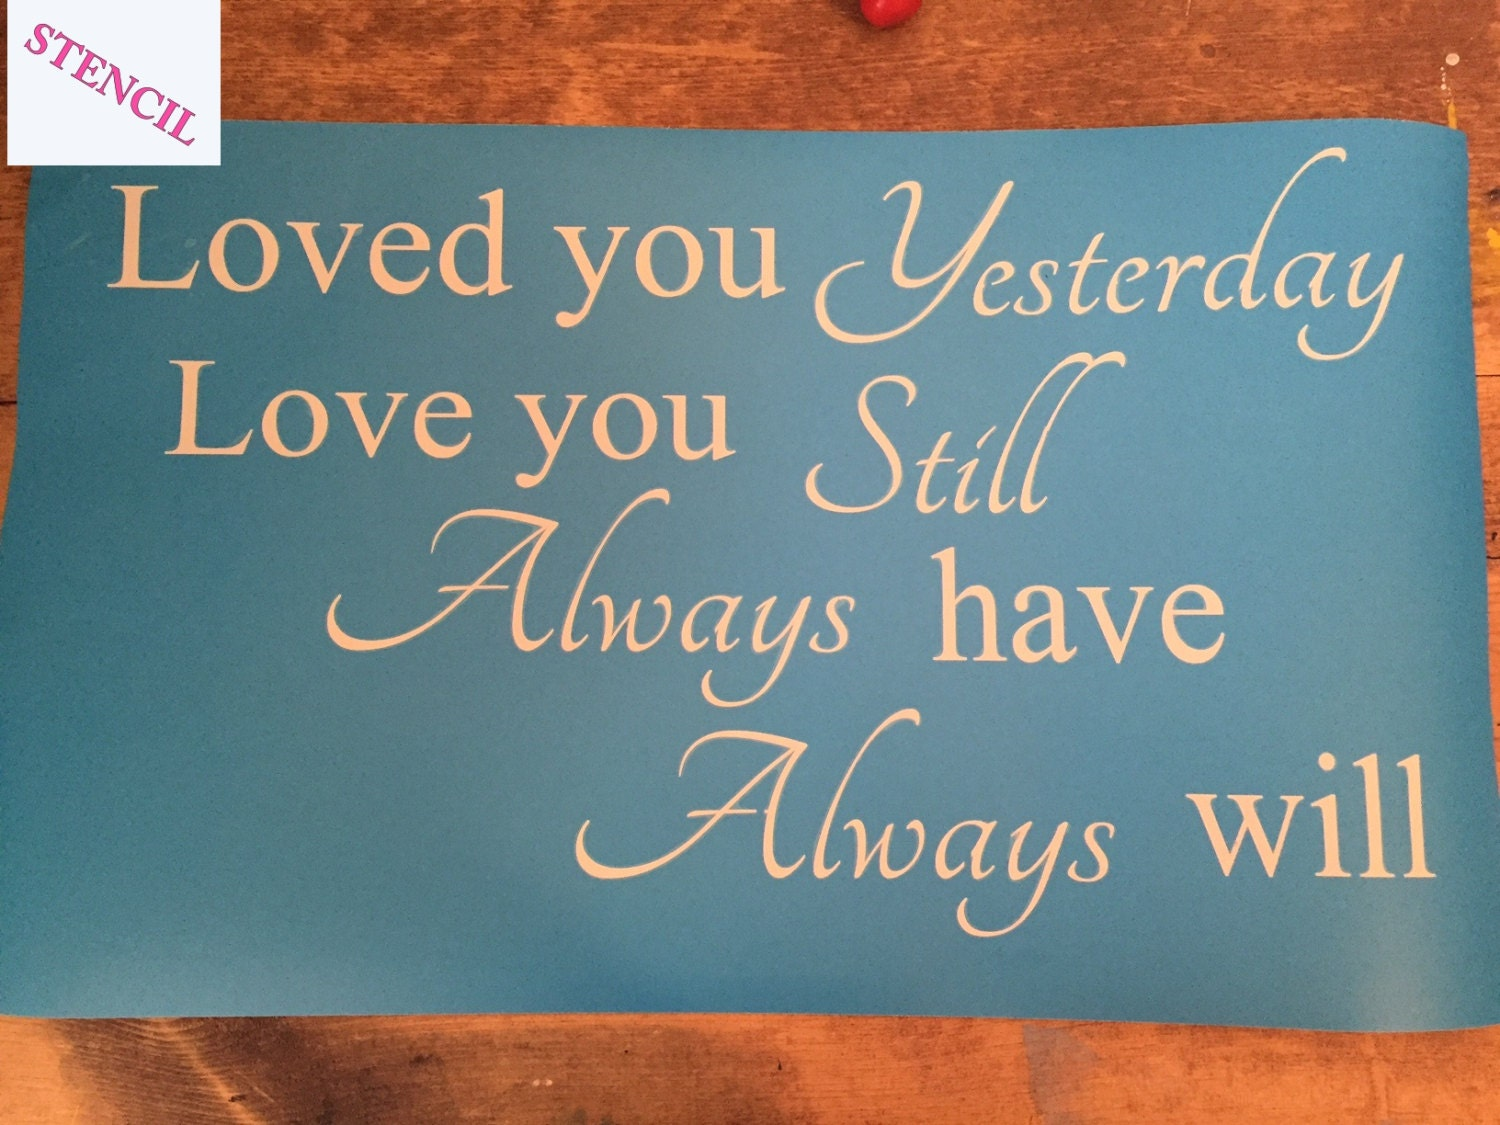 Loved You Yesterday Love You Still Quote: Loved You Yesterday Love You Still-Single Use Self-Adhesive